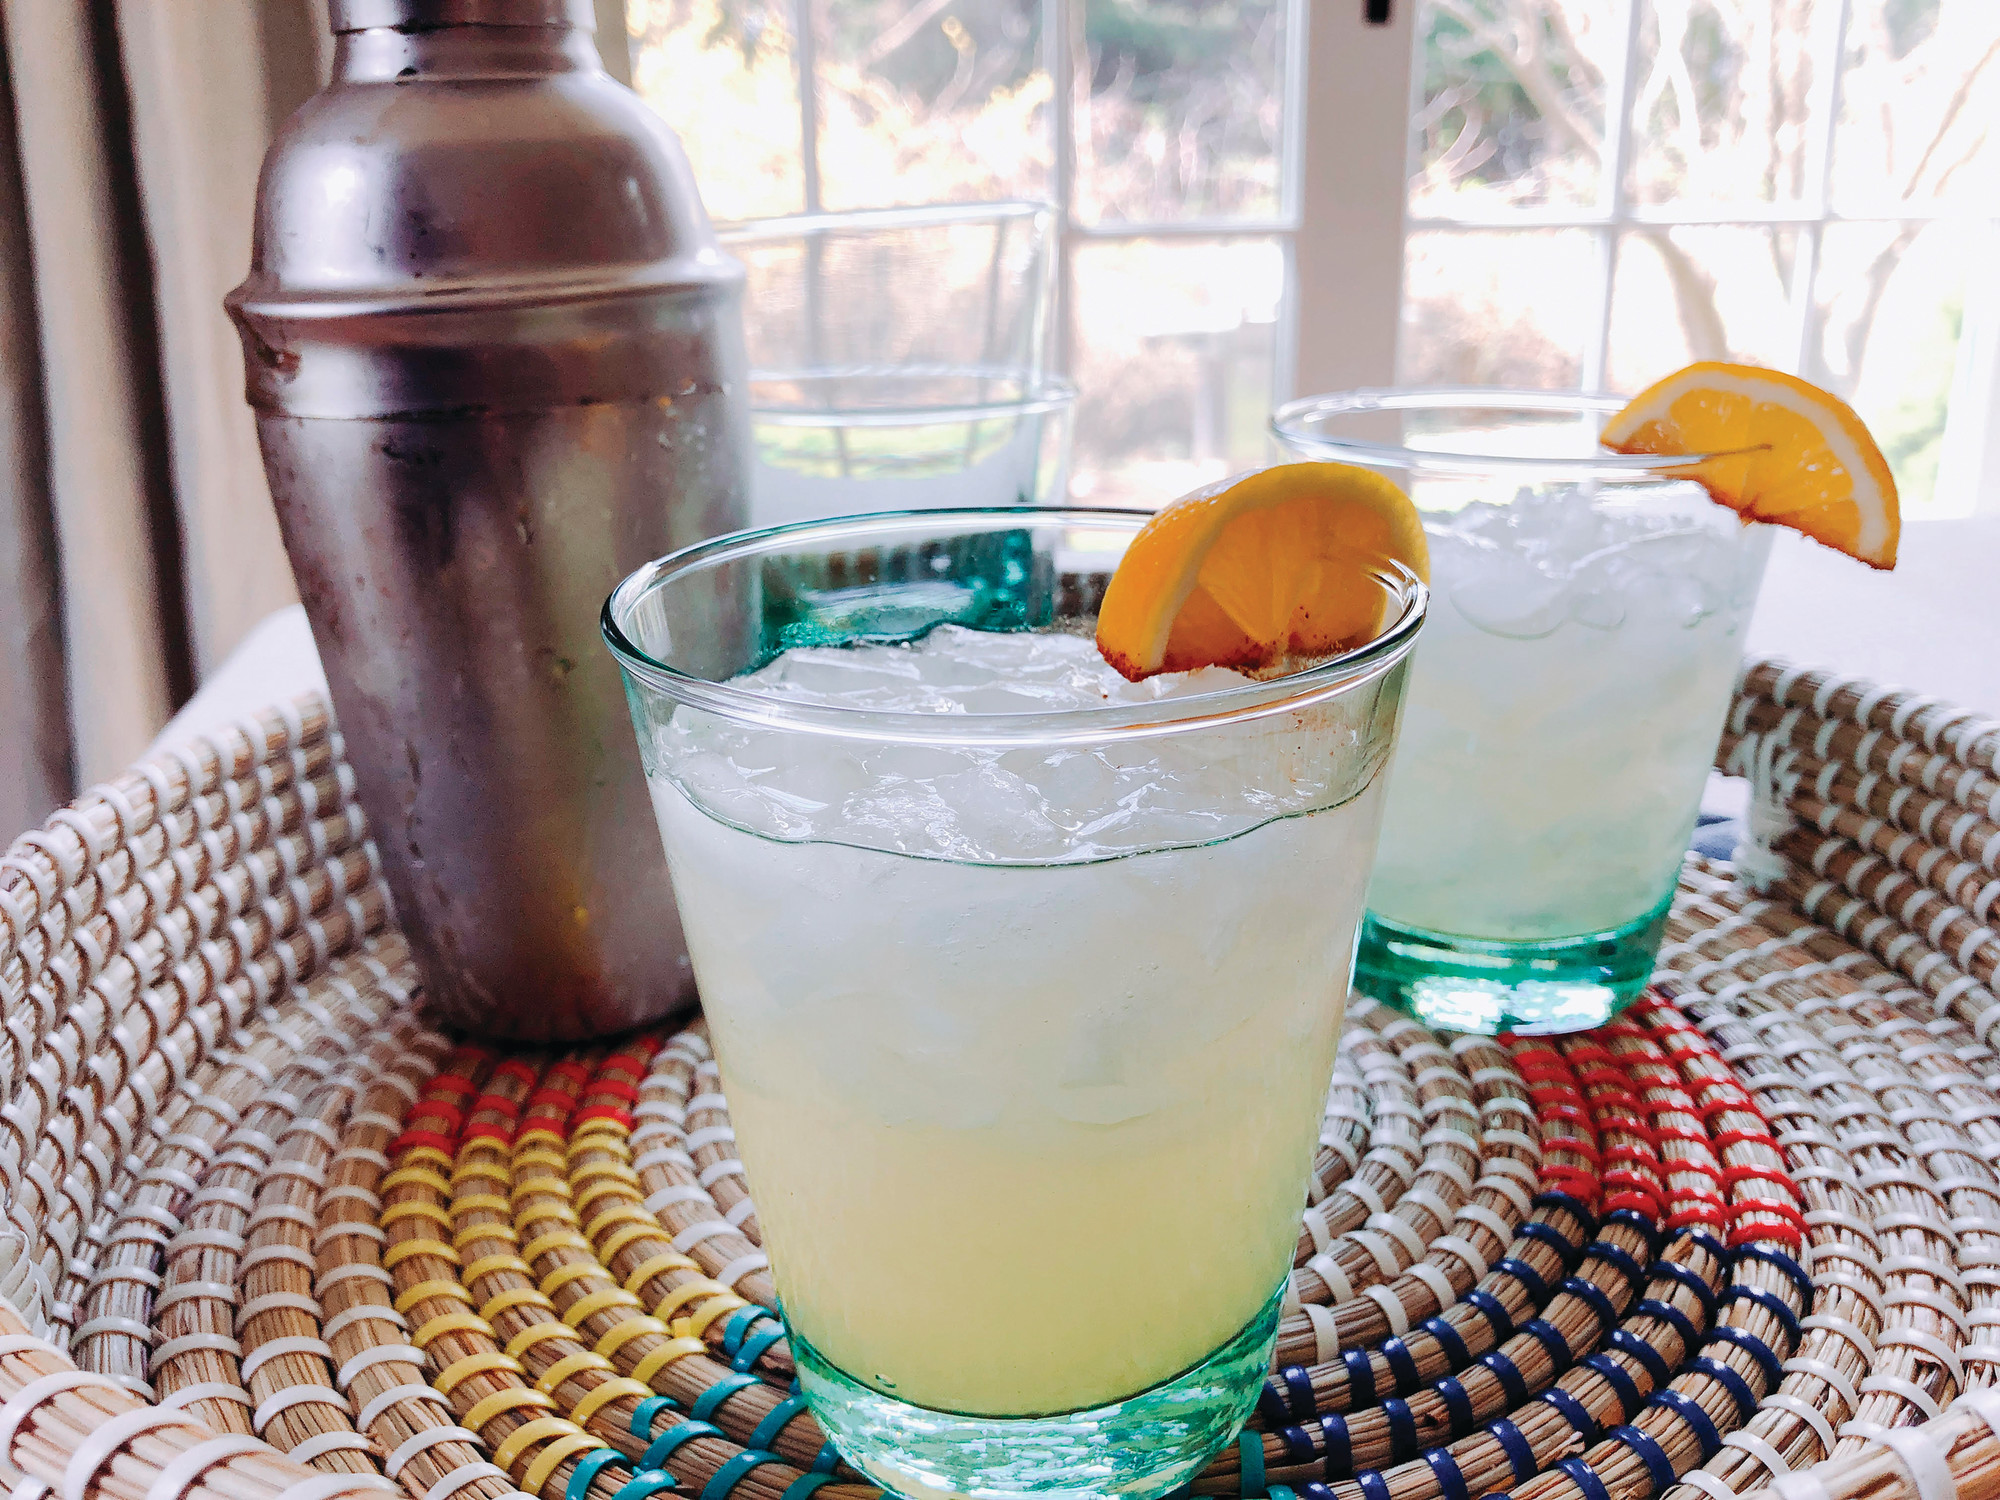 "THE ASSOCIATED PRESSA ""Skinny"" Mango Margarita is garnished with a slice of citrus dipped in cinnamon in Amagansett, New York. The recipe by Elizabeth Karmel calls for a tequila-based mango liqueur for flavor and sweetness, plus silver tequila and fresh-squeezed Meyer lemon juice."